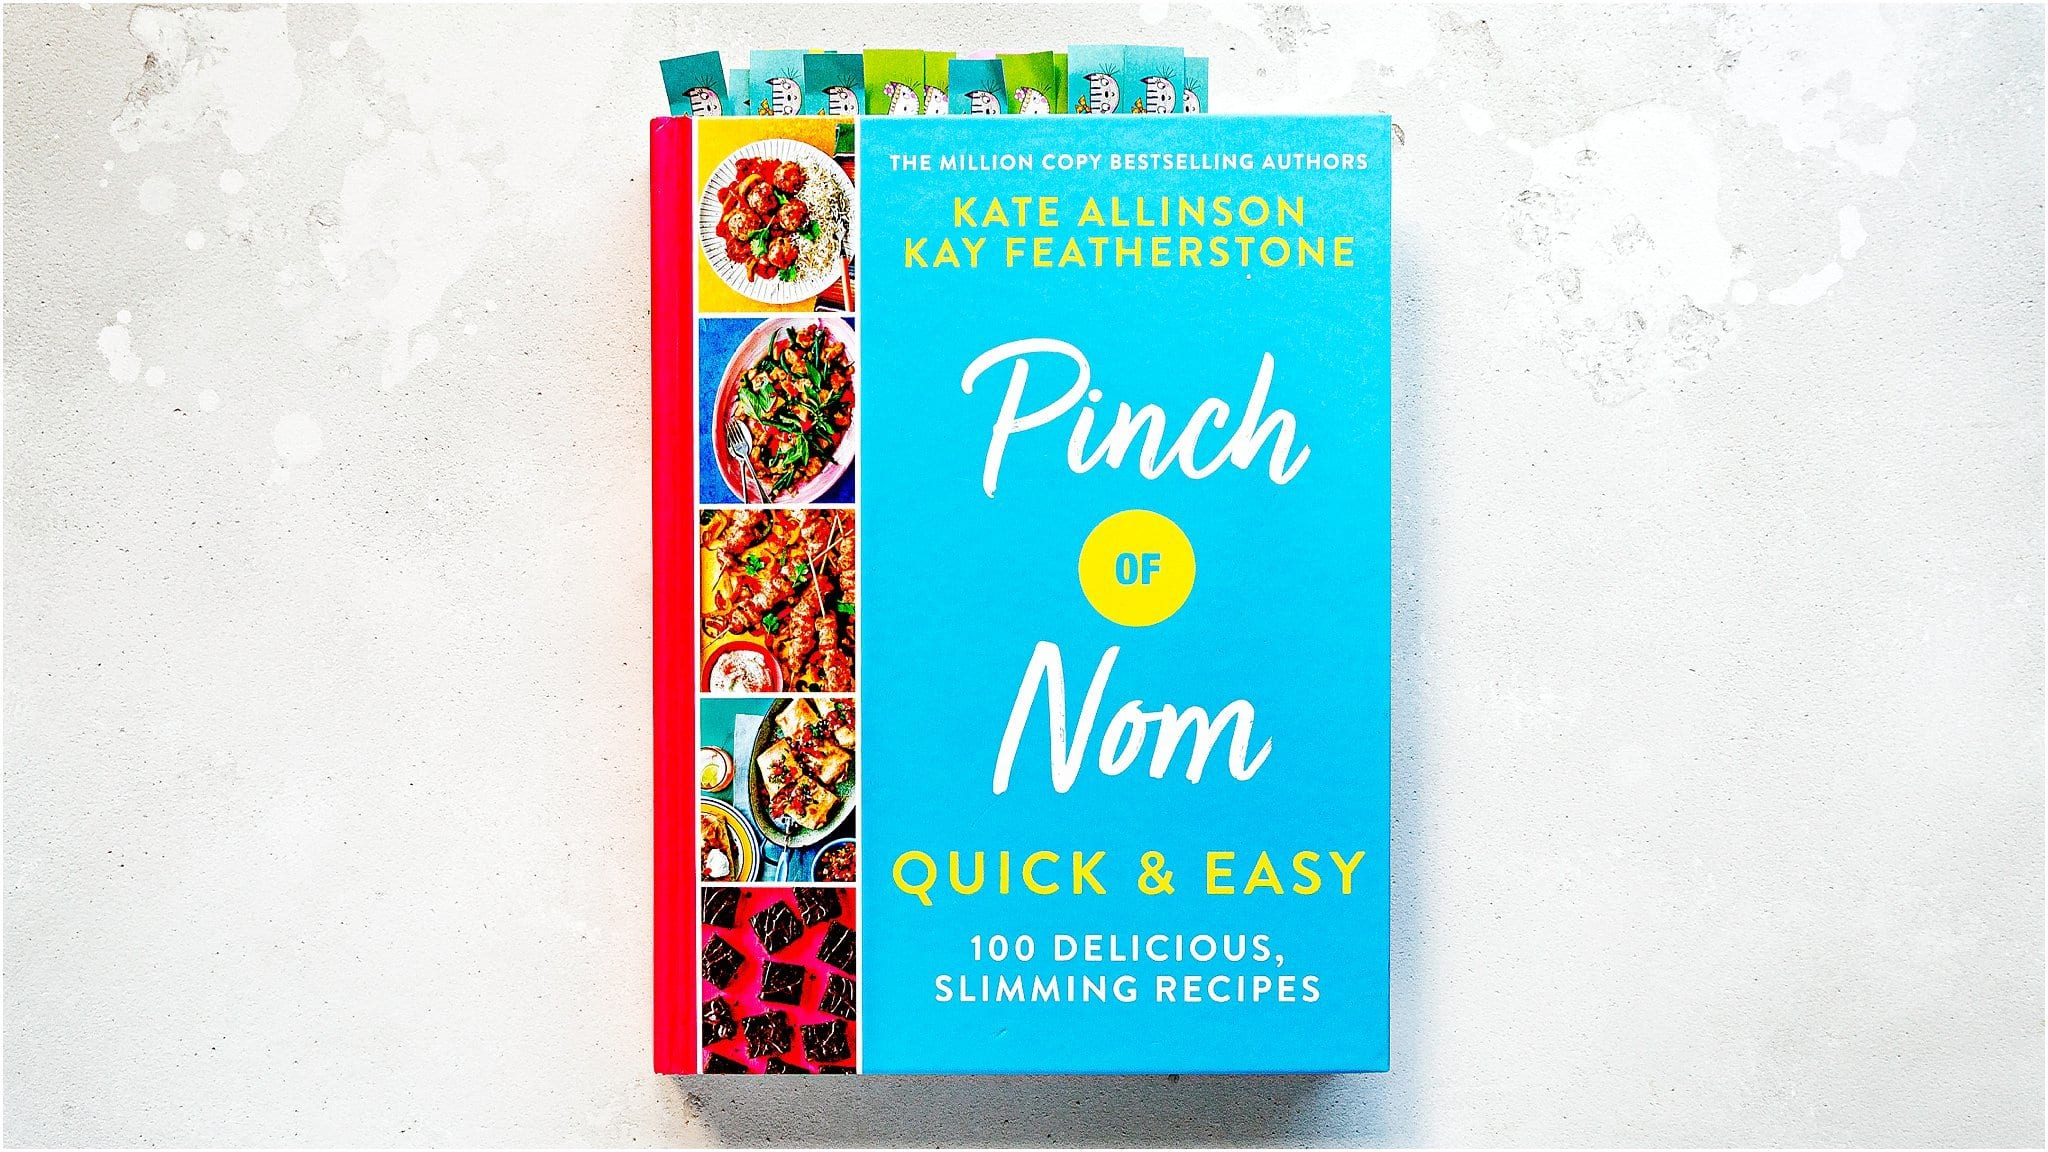 Pinch Of Nom video book review by Debby Hughes #bookreview #pinchofnom